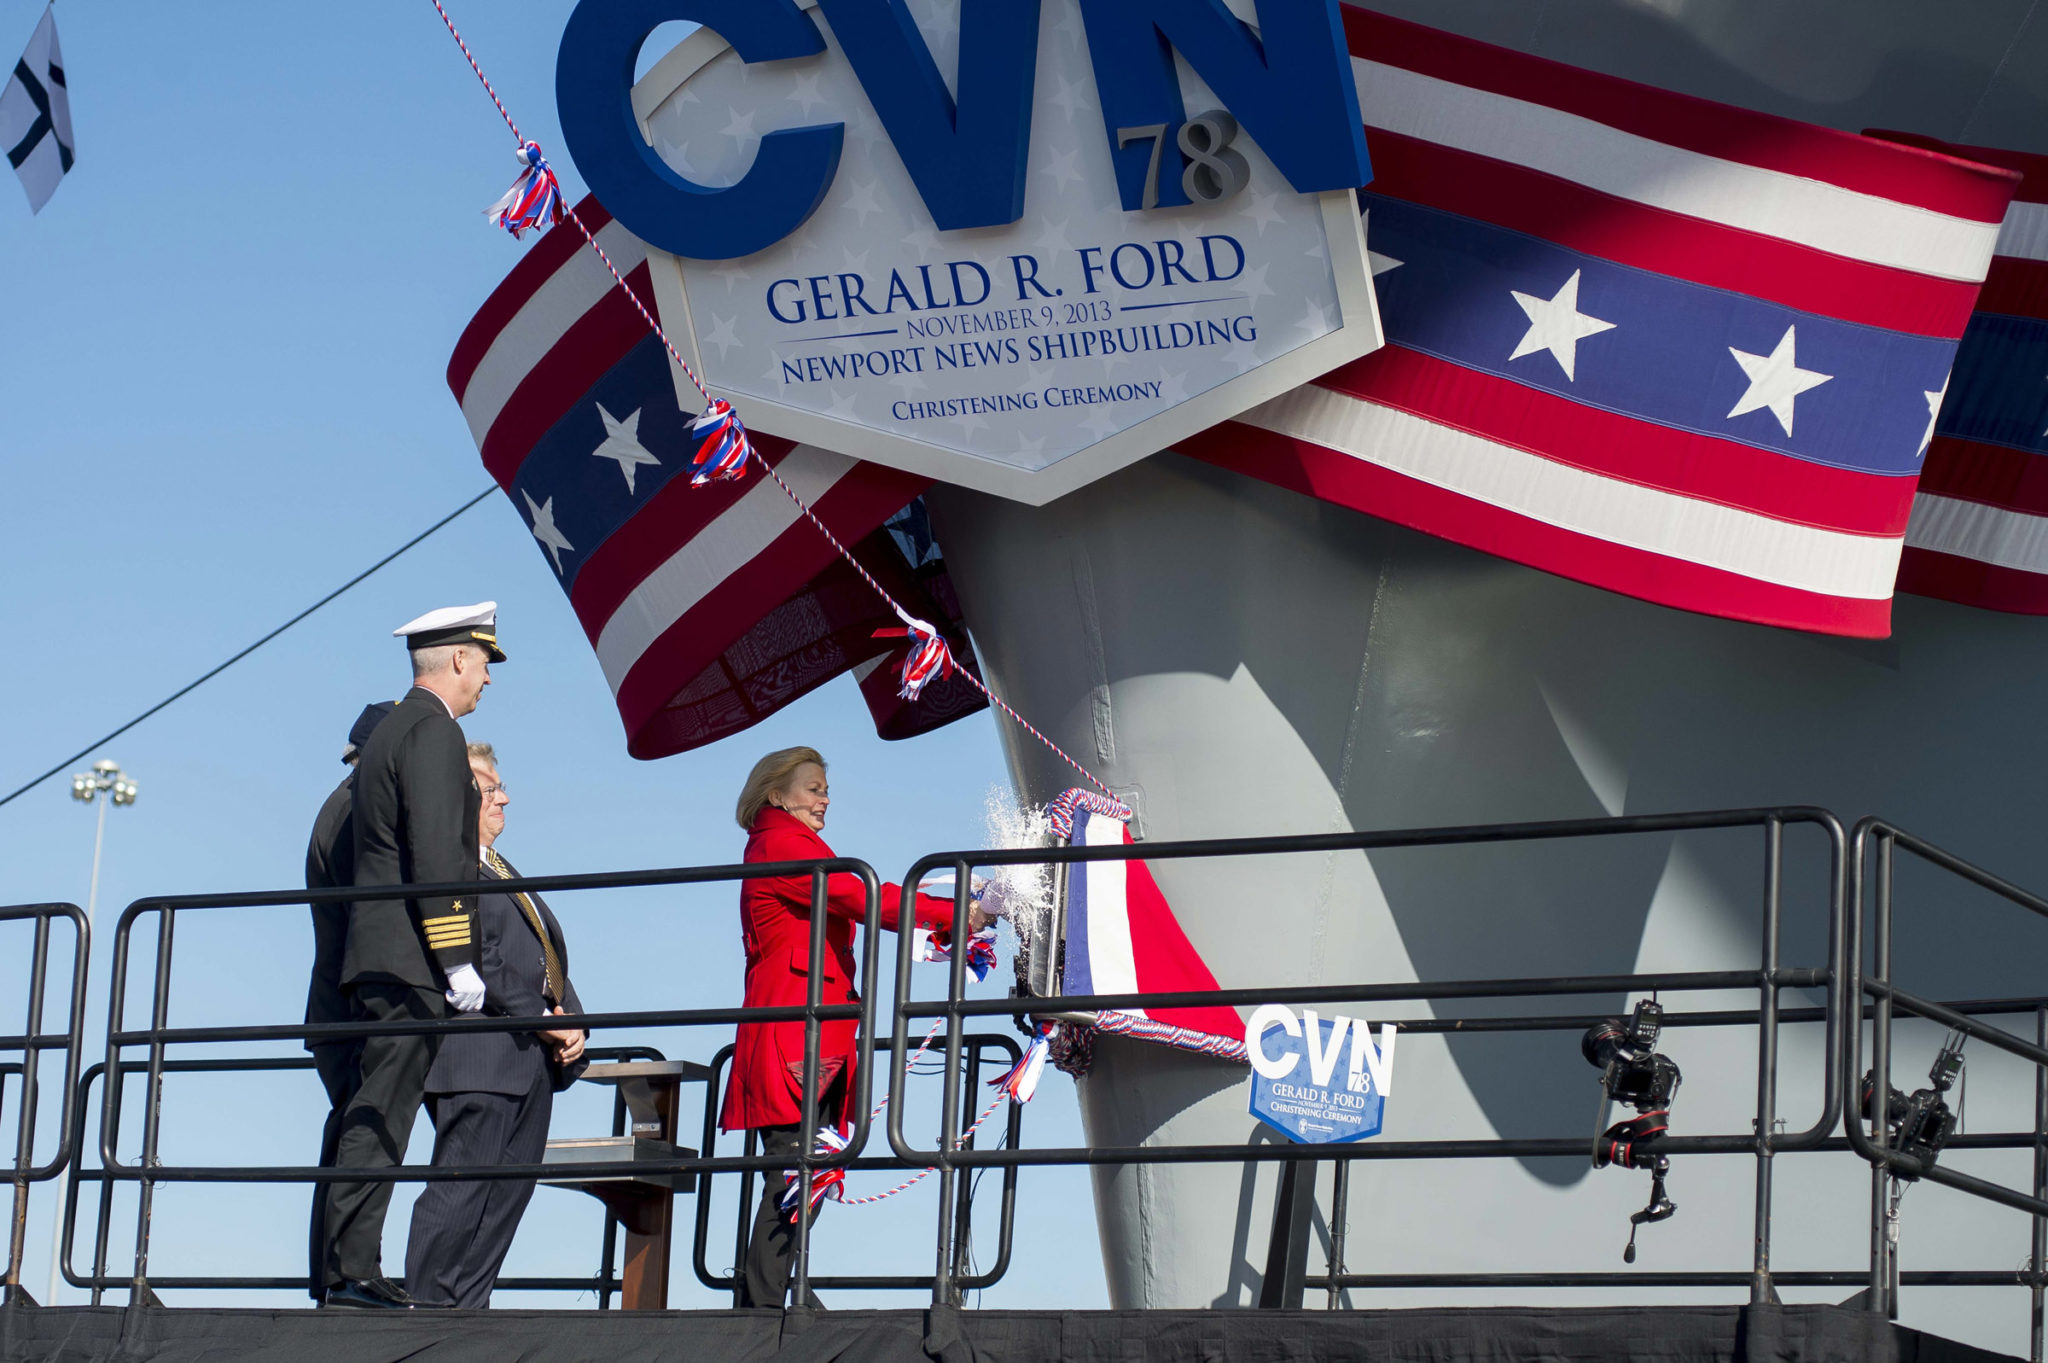 131109-N-WL435-911 NEWPORT NEWS, Va. (Nov. 9, 2013) Susan Ford Bales, daughter of former President Gerald R. Ford and sponsor of the aircraft carrier that bears his name, breaks a bottle of champagne on the bow of the aircraft carrier Gerald R. Ford (CVN 78) at Newport News Shipbuilding during the christening ceremony for the Ford. The first in class, Ford-class aircraft carrier, is scheduled to join the fleet in 2016. (U.S. Navy photo by Chief Mass Communication Specialist Peter D. Lawlor/Released)